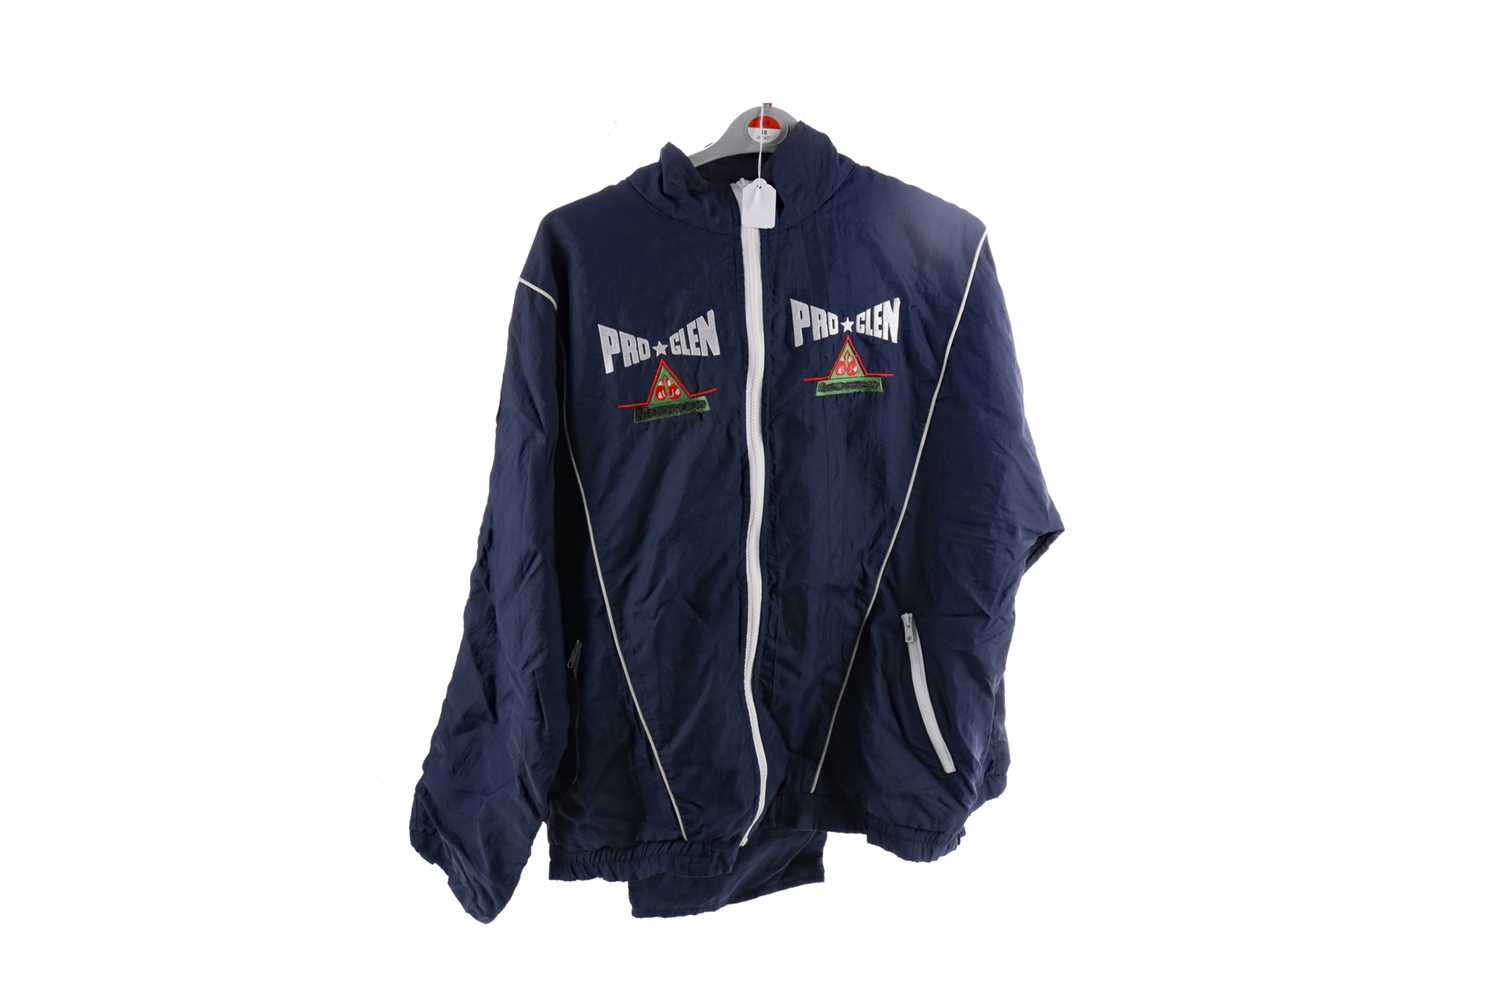 Lot 1708 - A TRACKSUIT SAID TO HAVE BEEN WORN BY CHRIS EUBANK